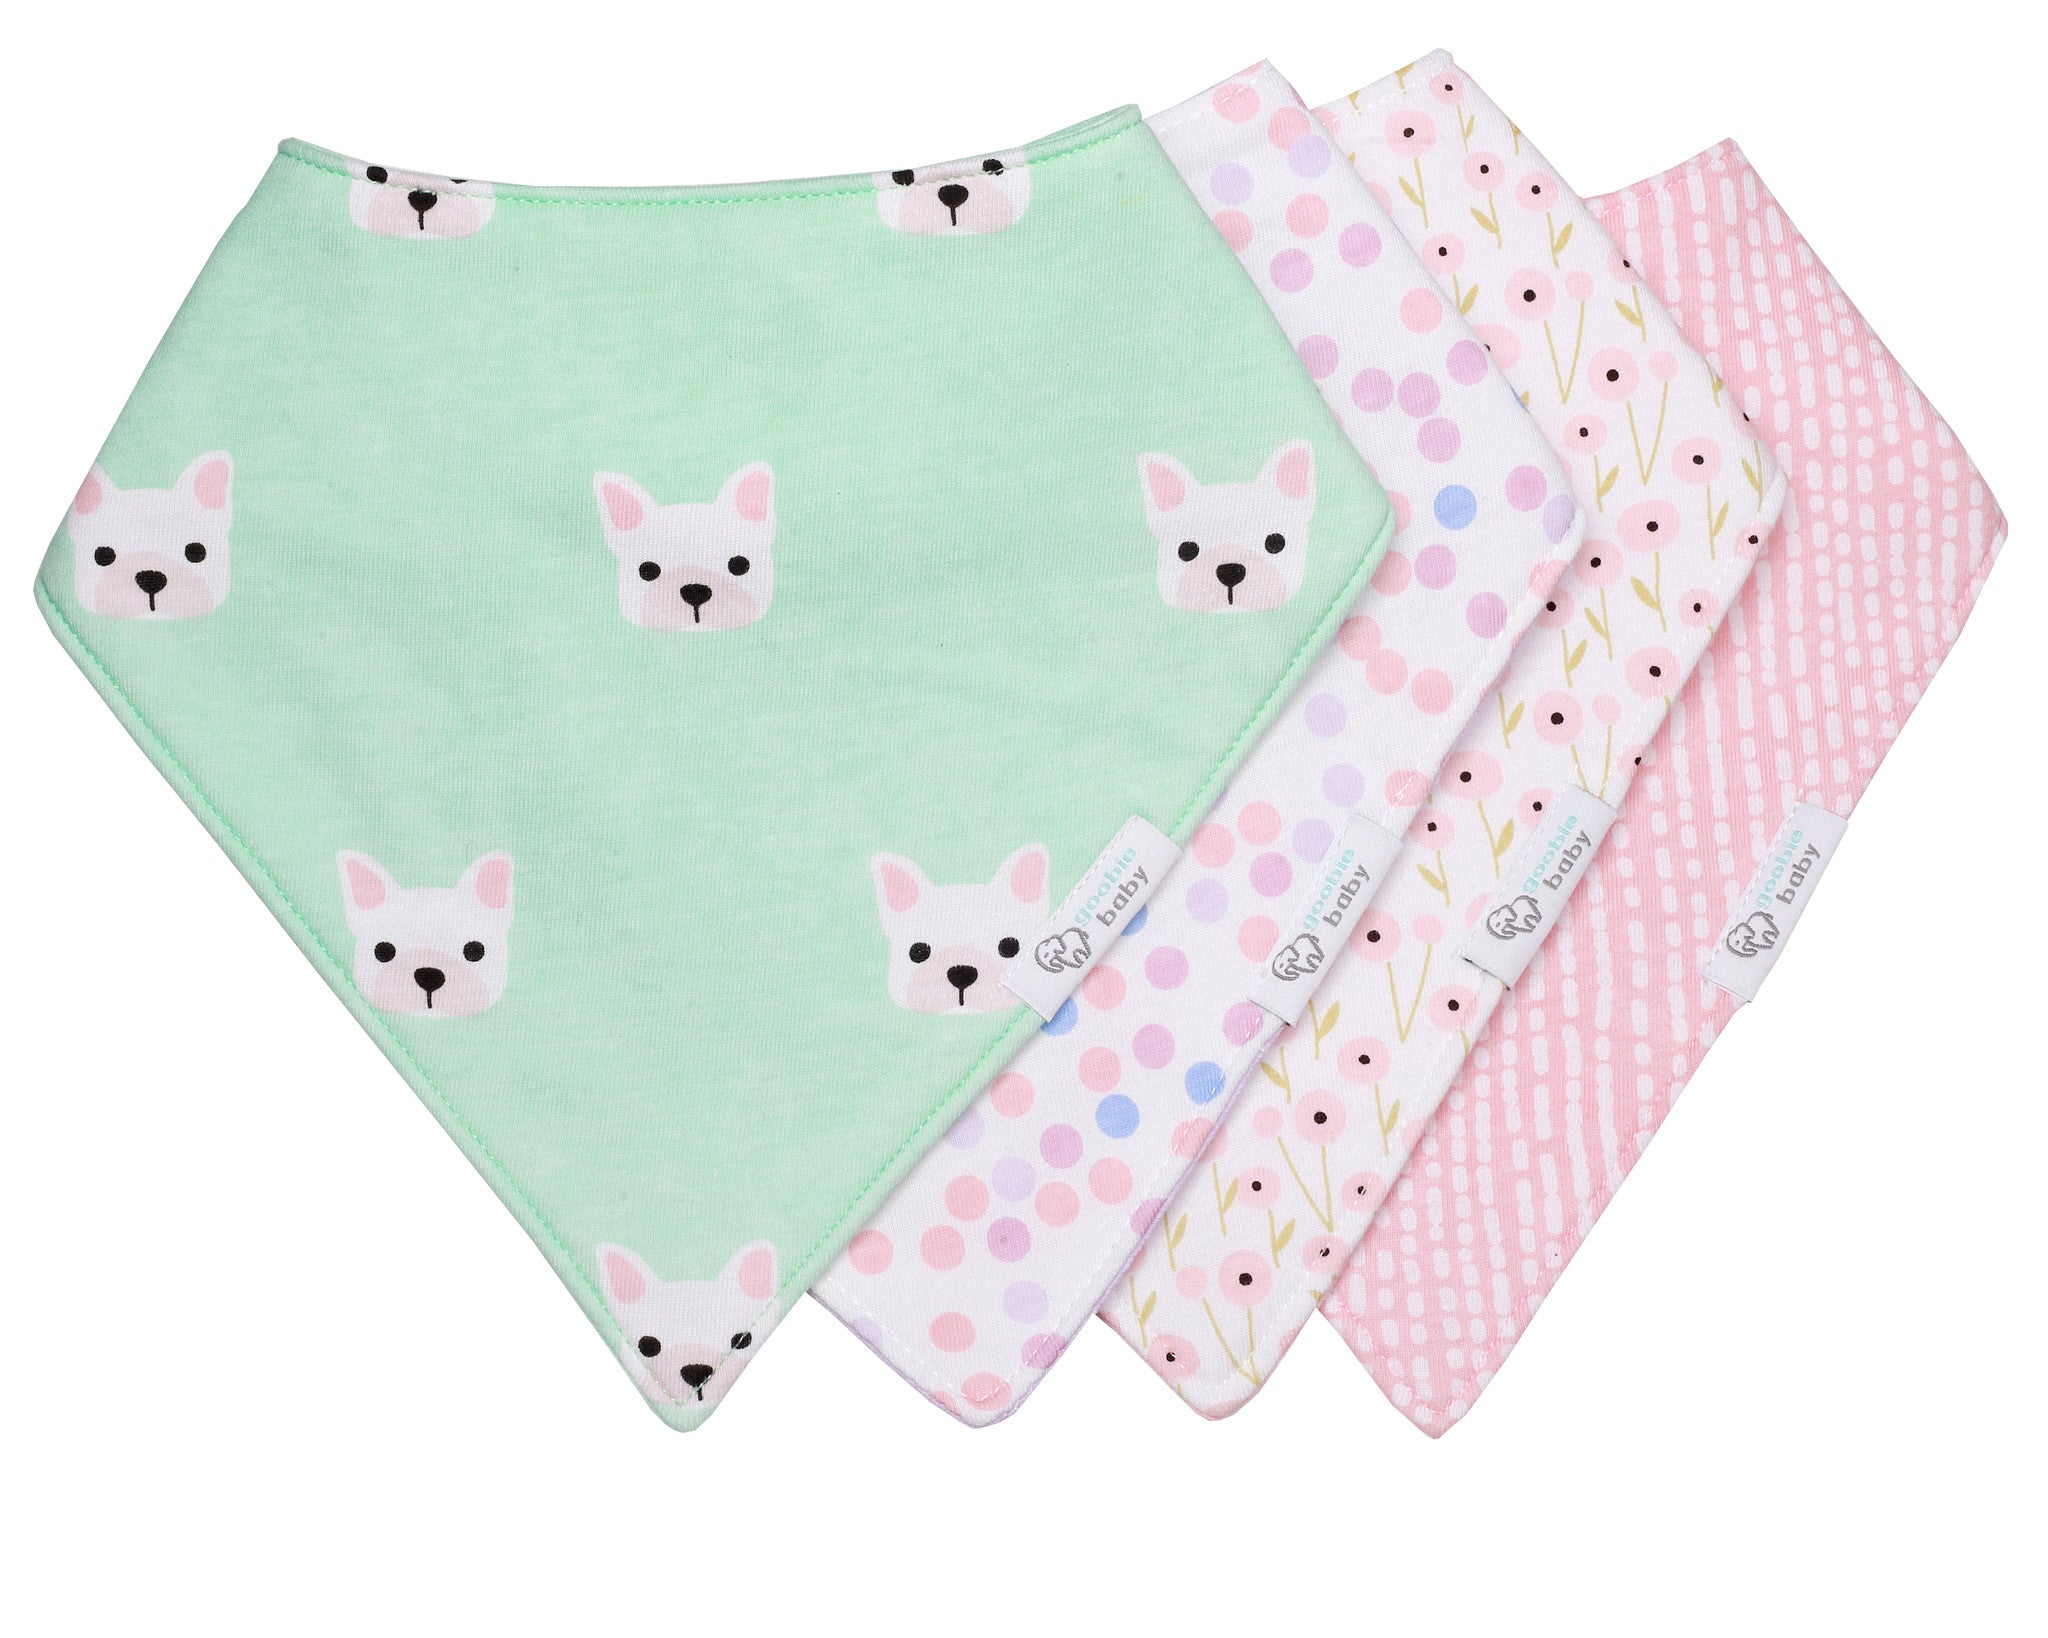 Reversible & Waterproof Cotton Bandana Bibs - Mint/Pink Puppy